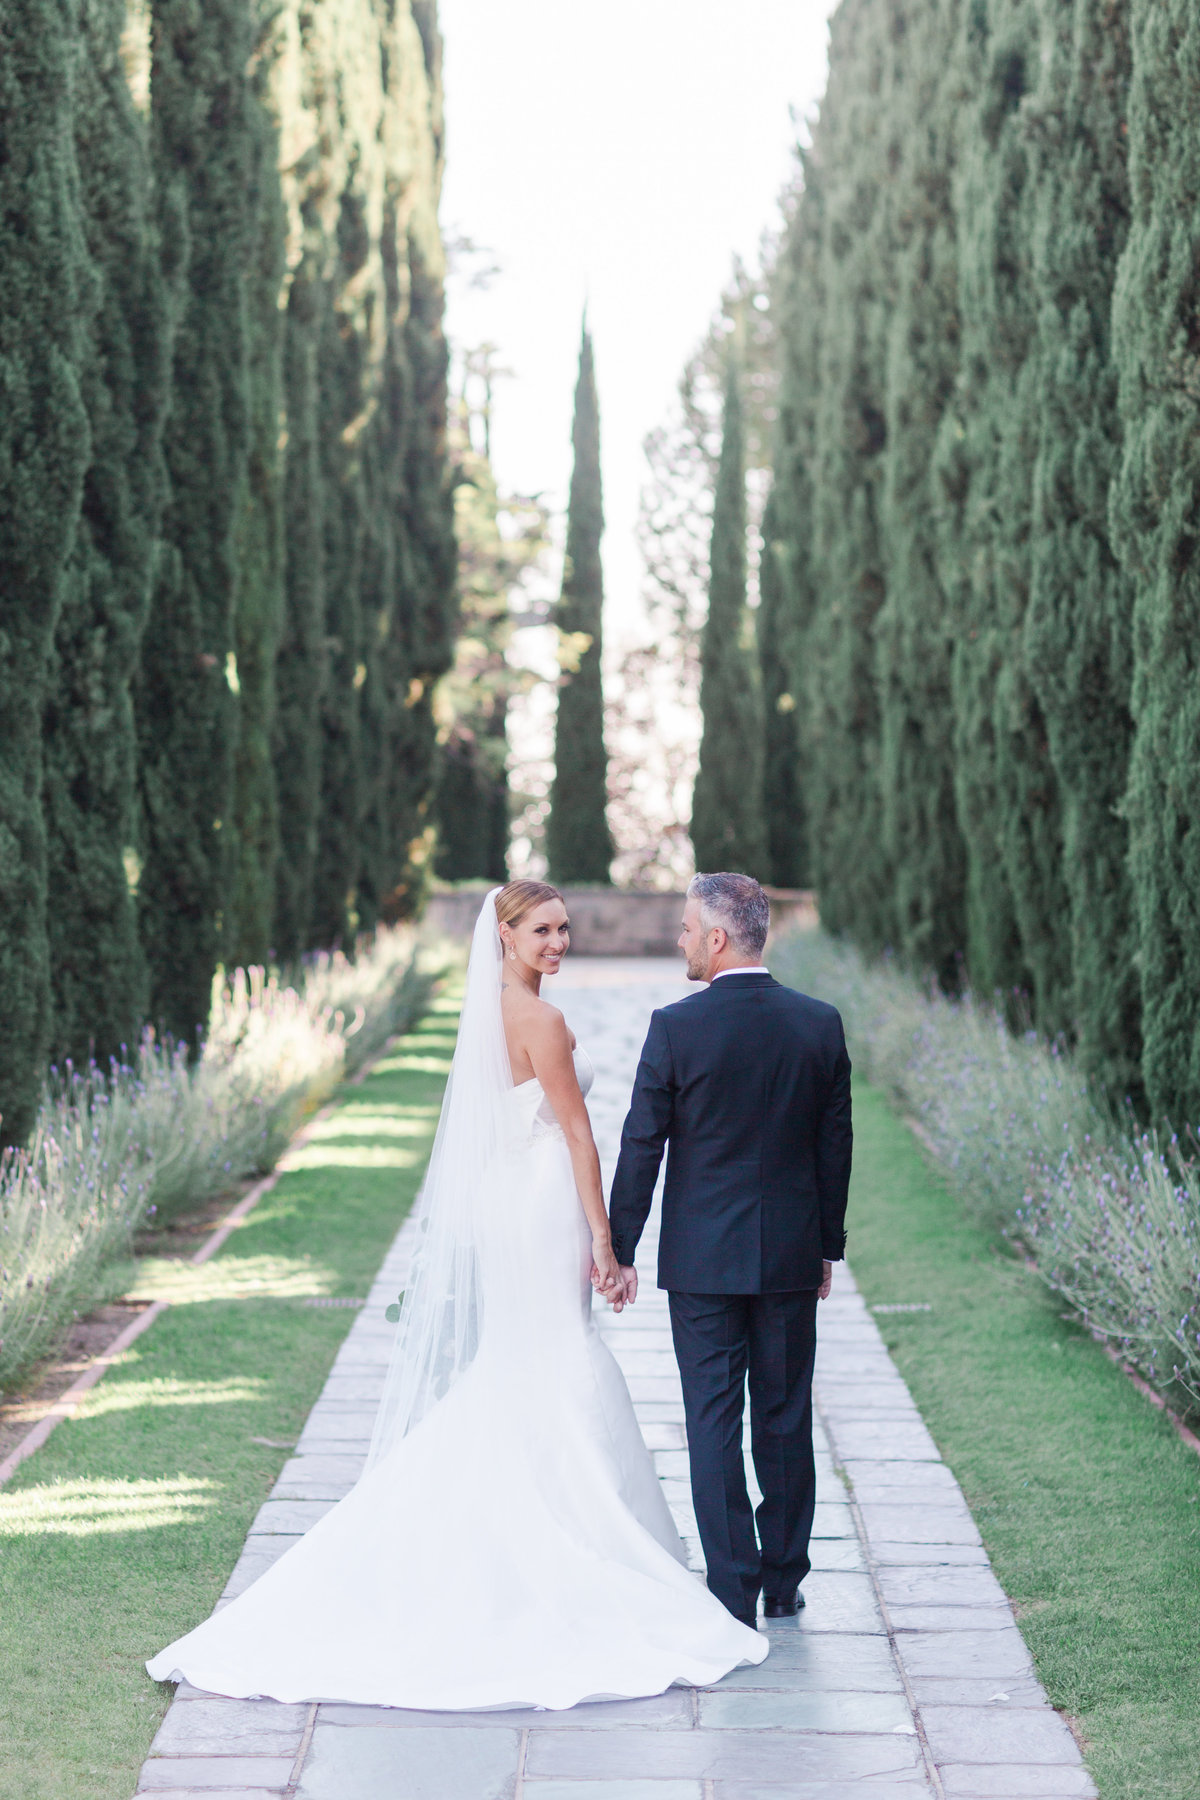 Greystone_Mansion_Intimate_Black_Tie_Wedding_Valorie_Darling_Photography - 128 of 206